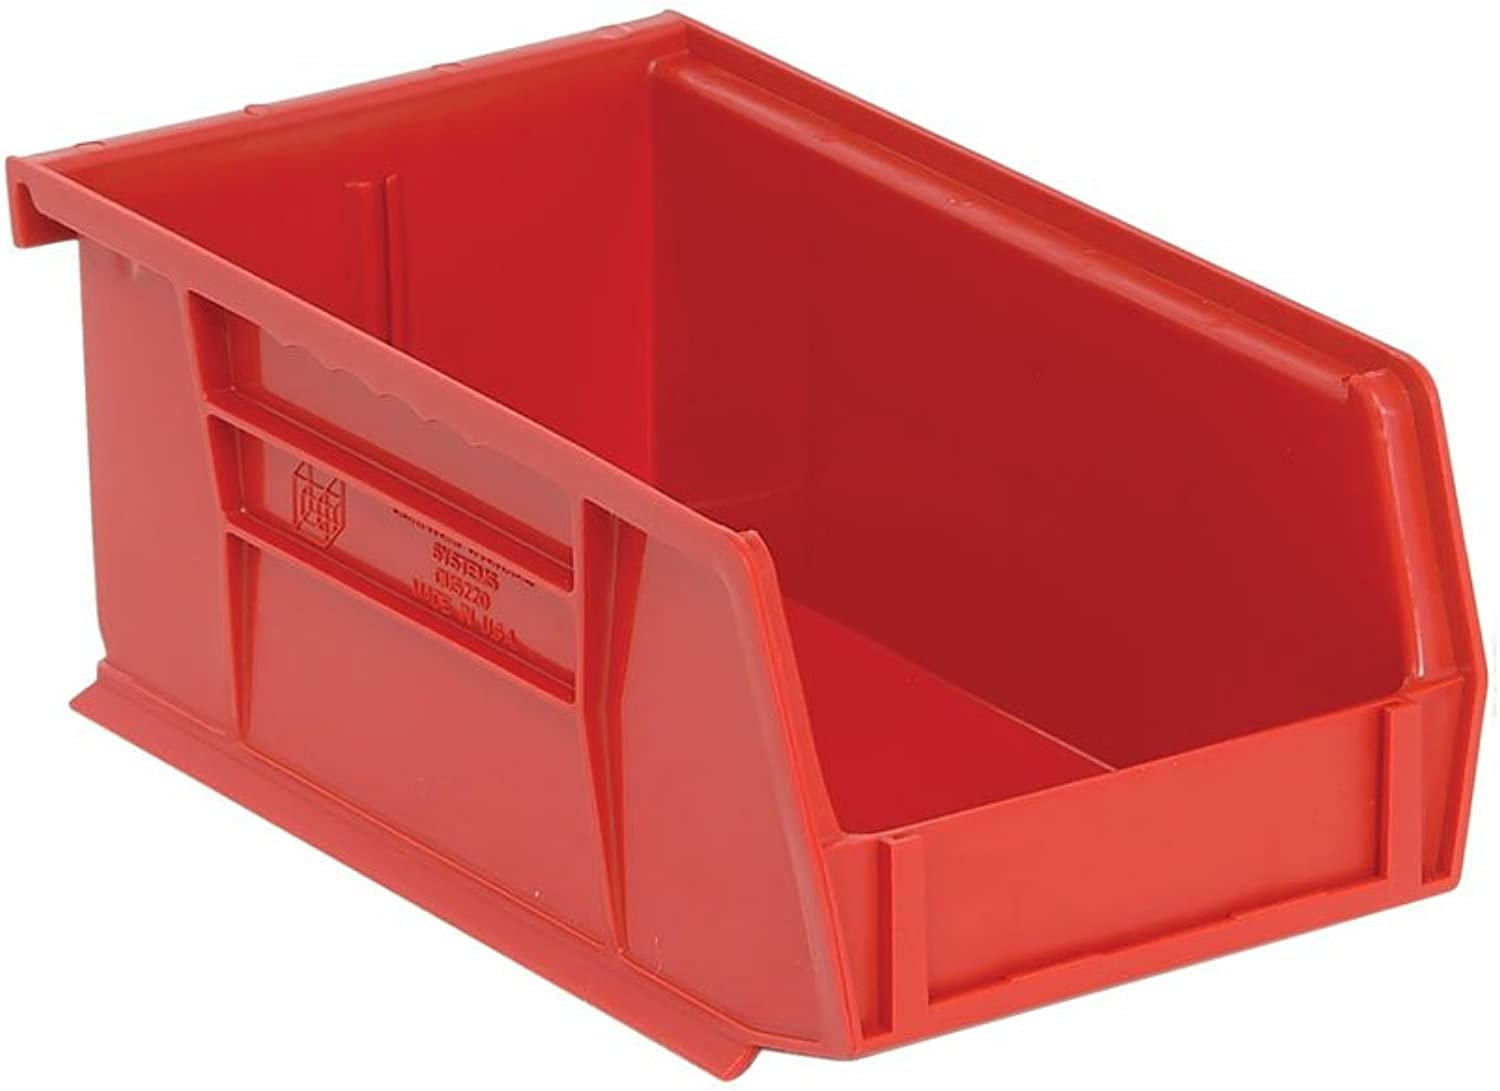 Quantum QUS220 Plastic Storage Stacking Ultra Bin, 7-Inch by 4-Inch by 3-Inch, Red, Case of 24